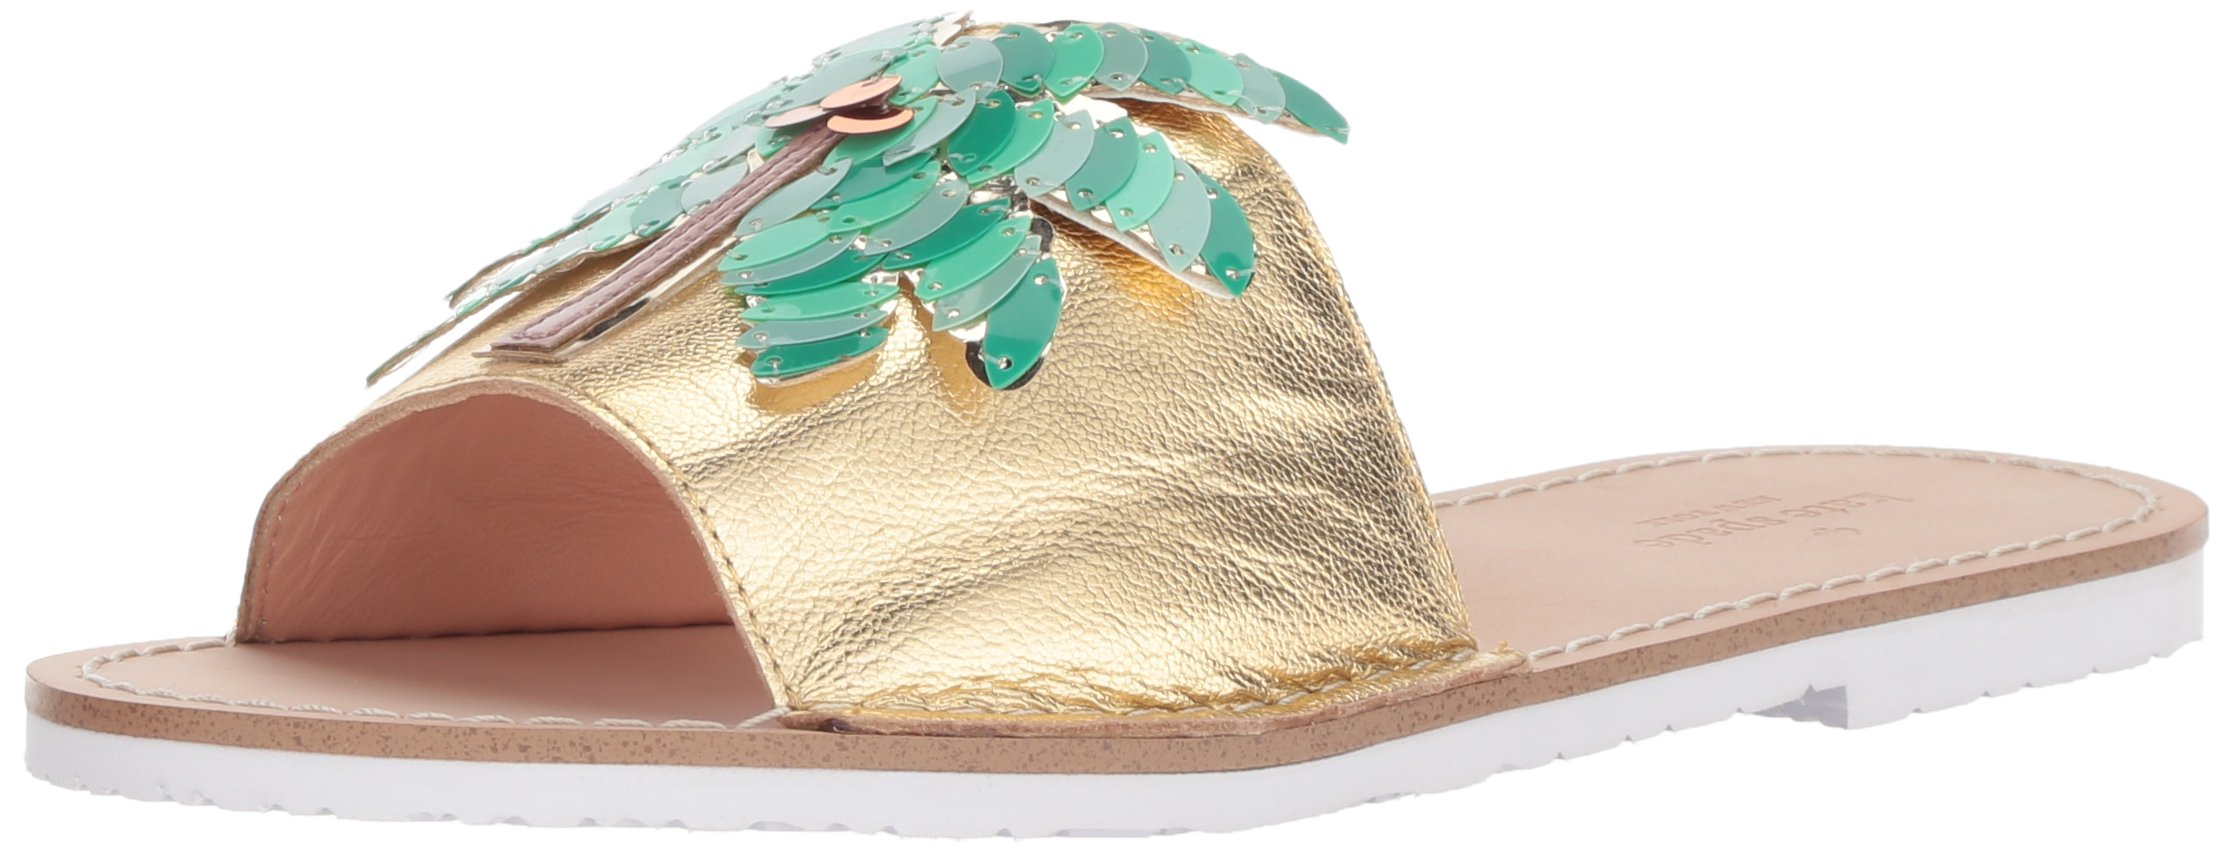 Kate Spade New York Women's Izele Slide Sandal, Gold, 9.5 M US